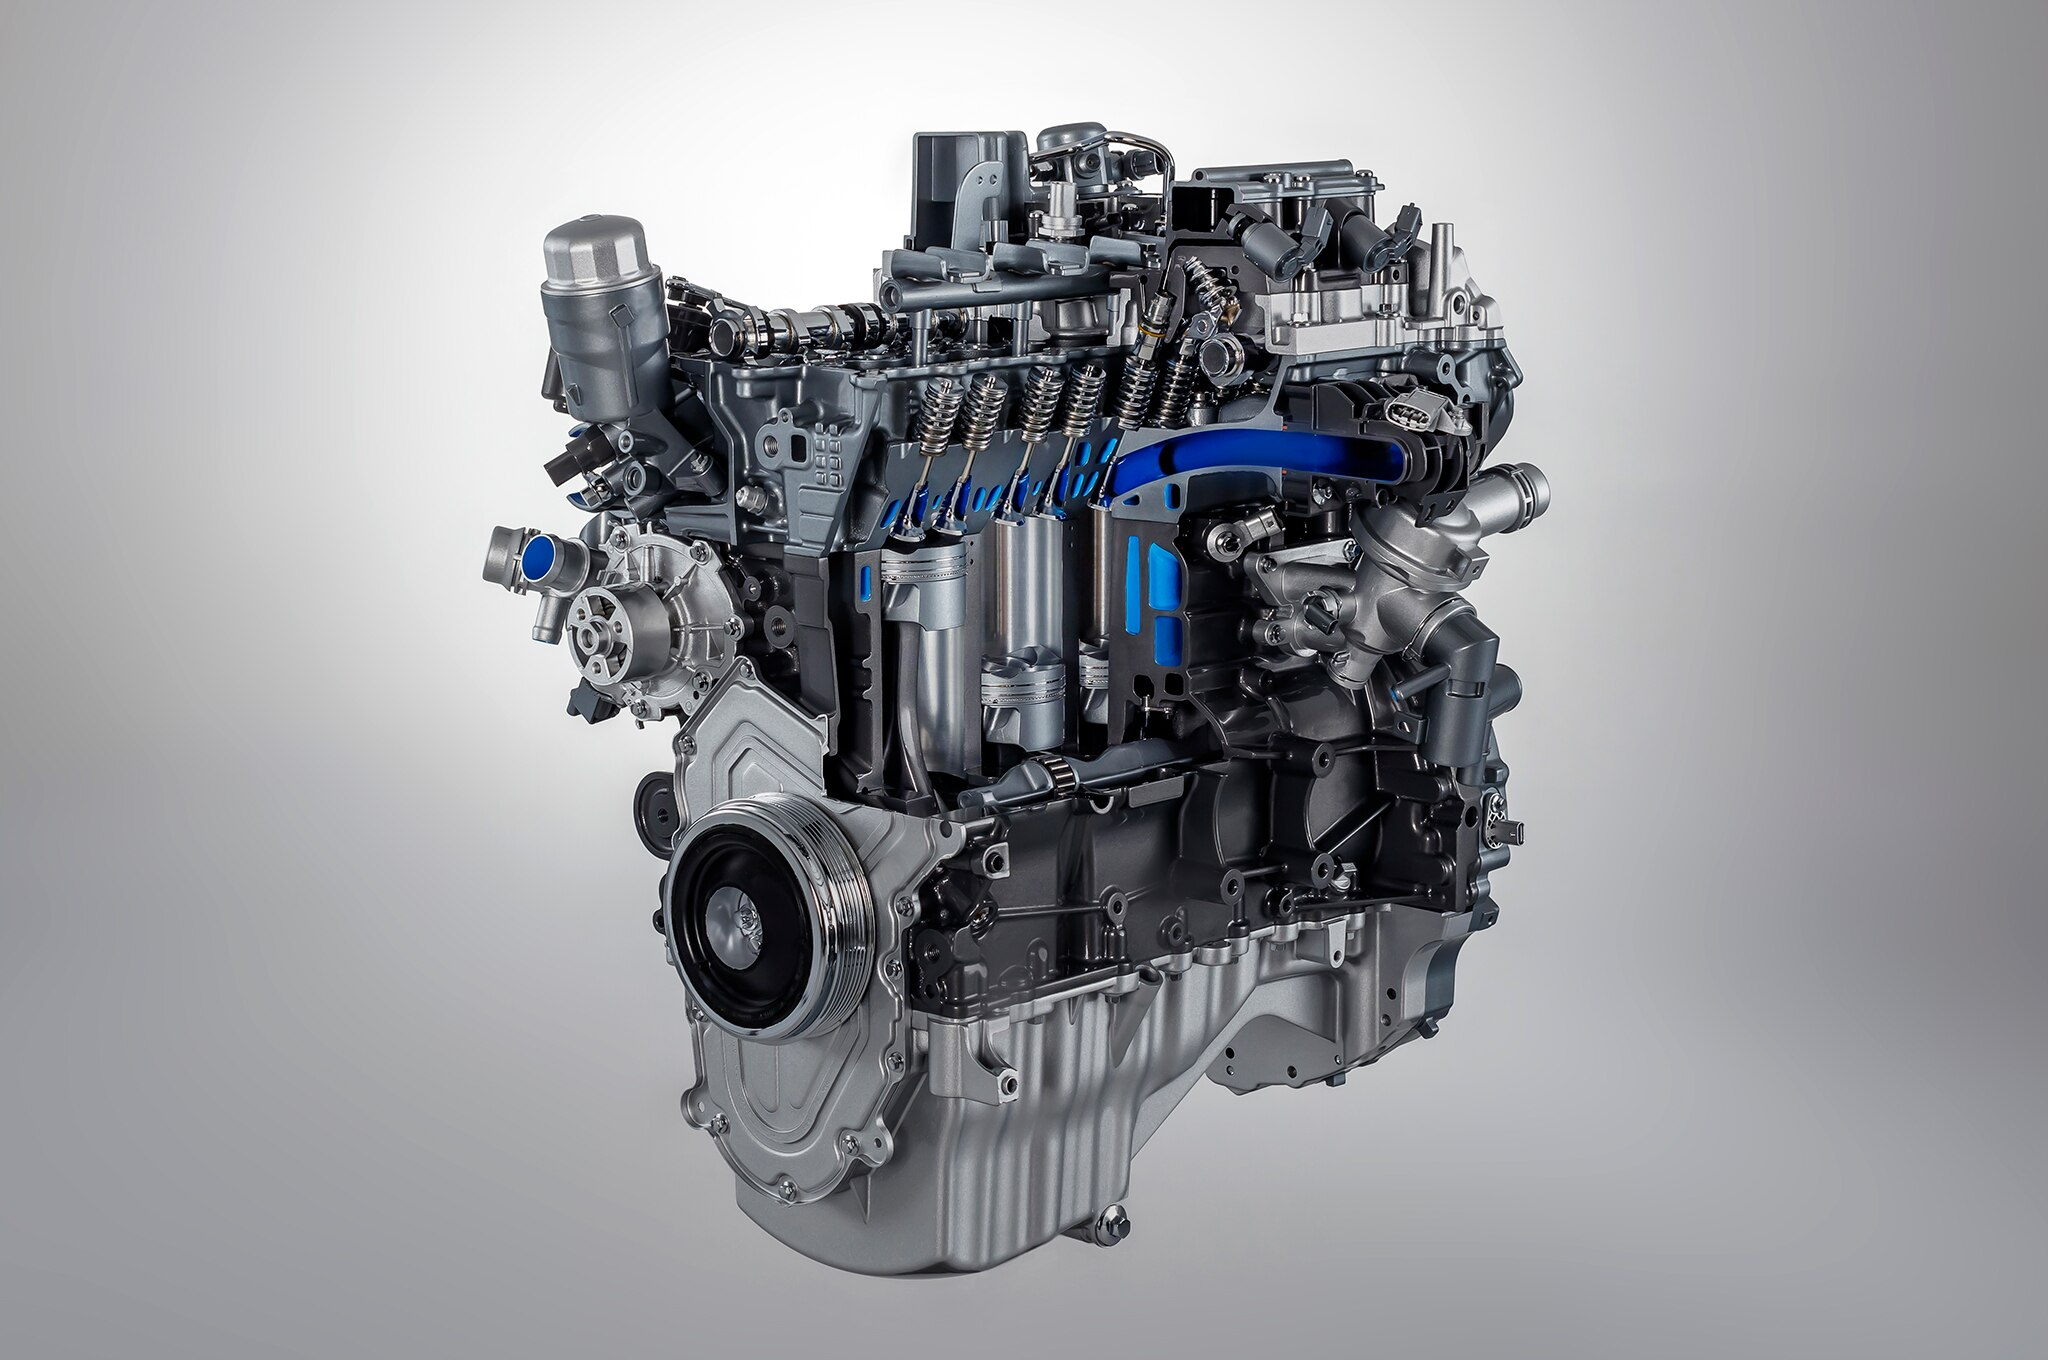 2018 Jaguar F Type four cylinder engine